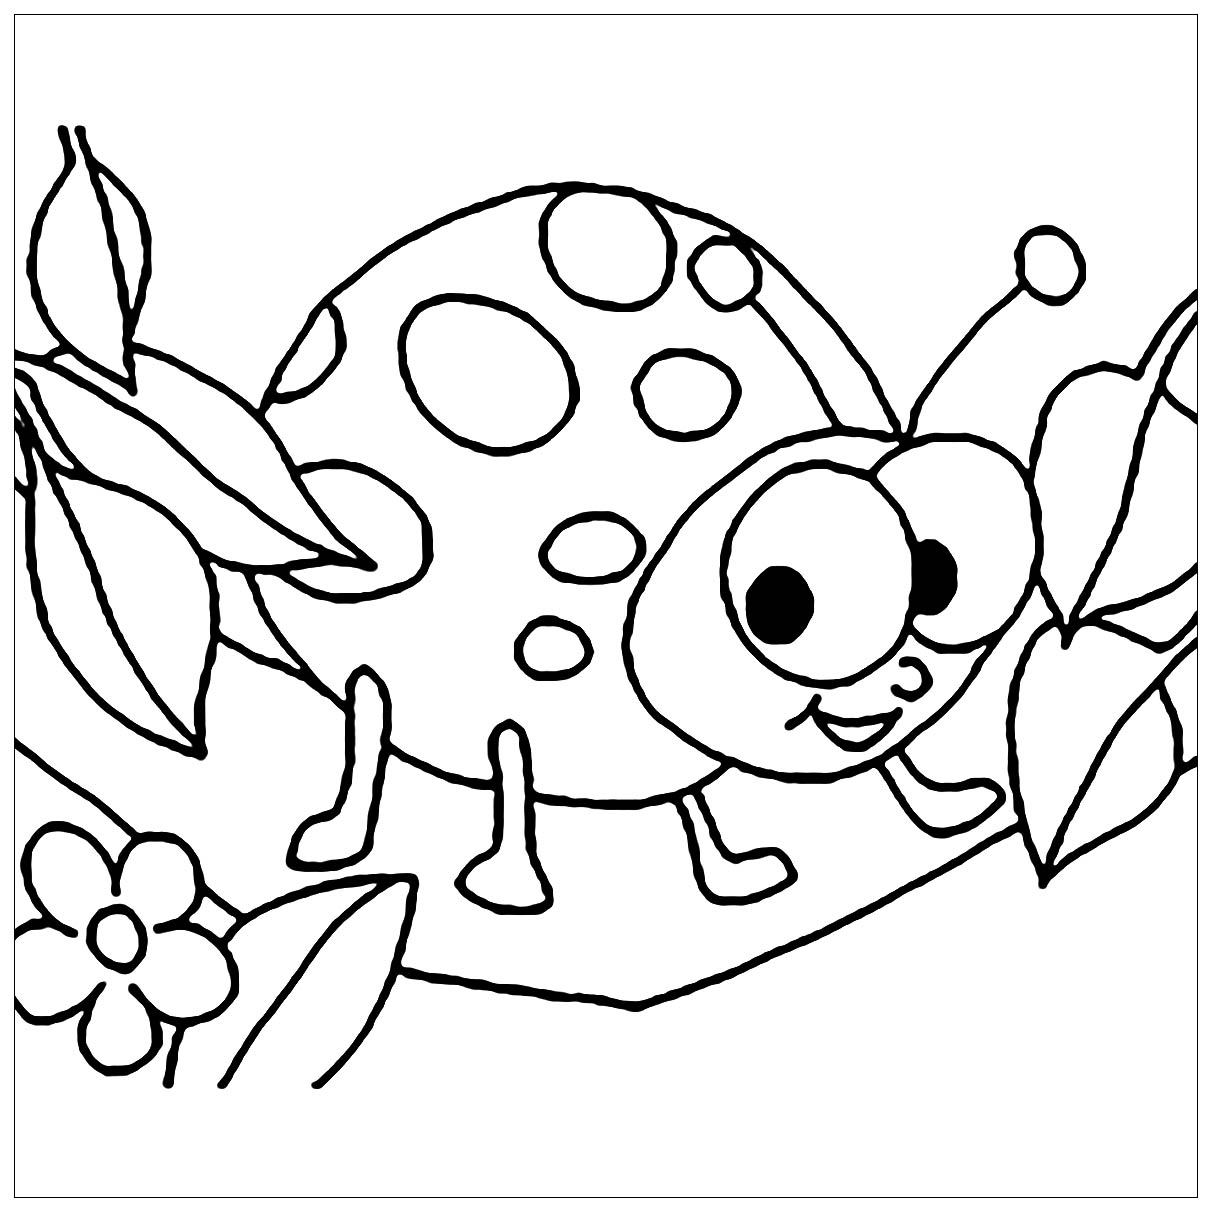 Coloring Book Pages Insects Insects for kids Insects Kids Coloring Pages